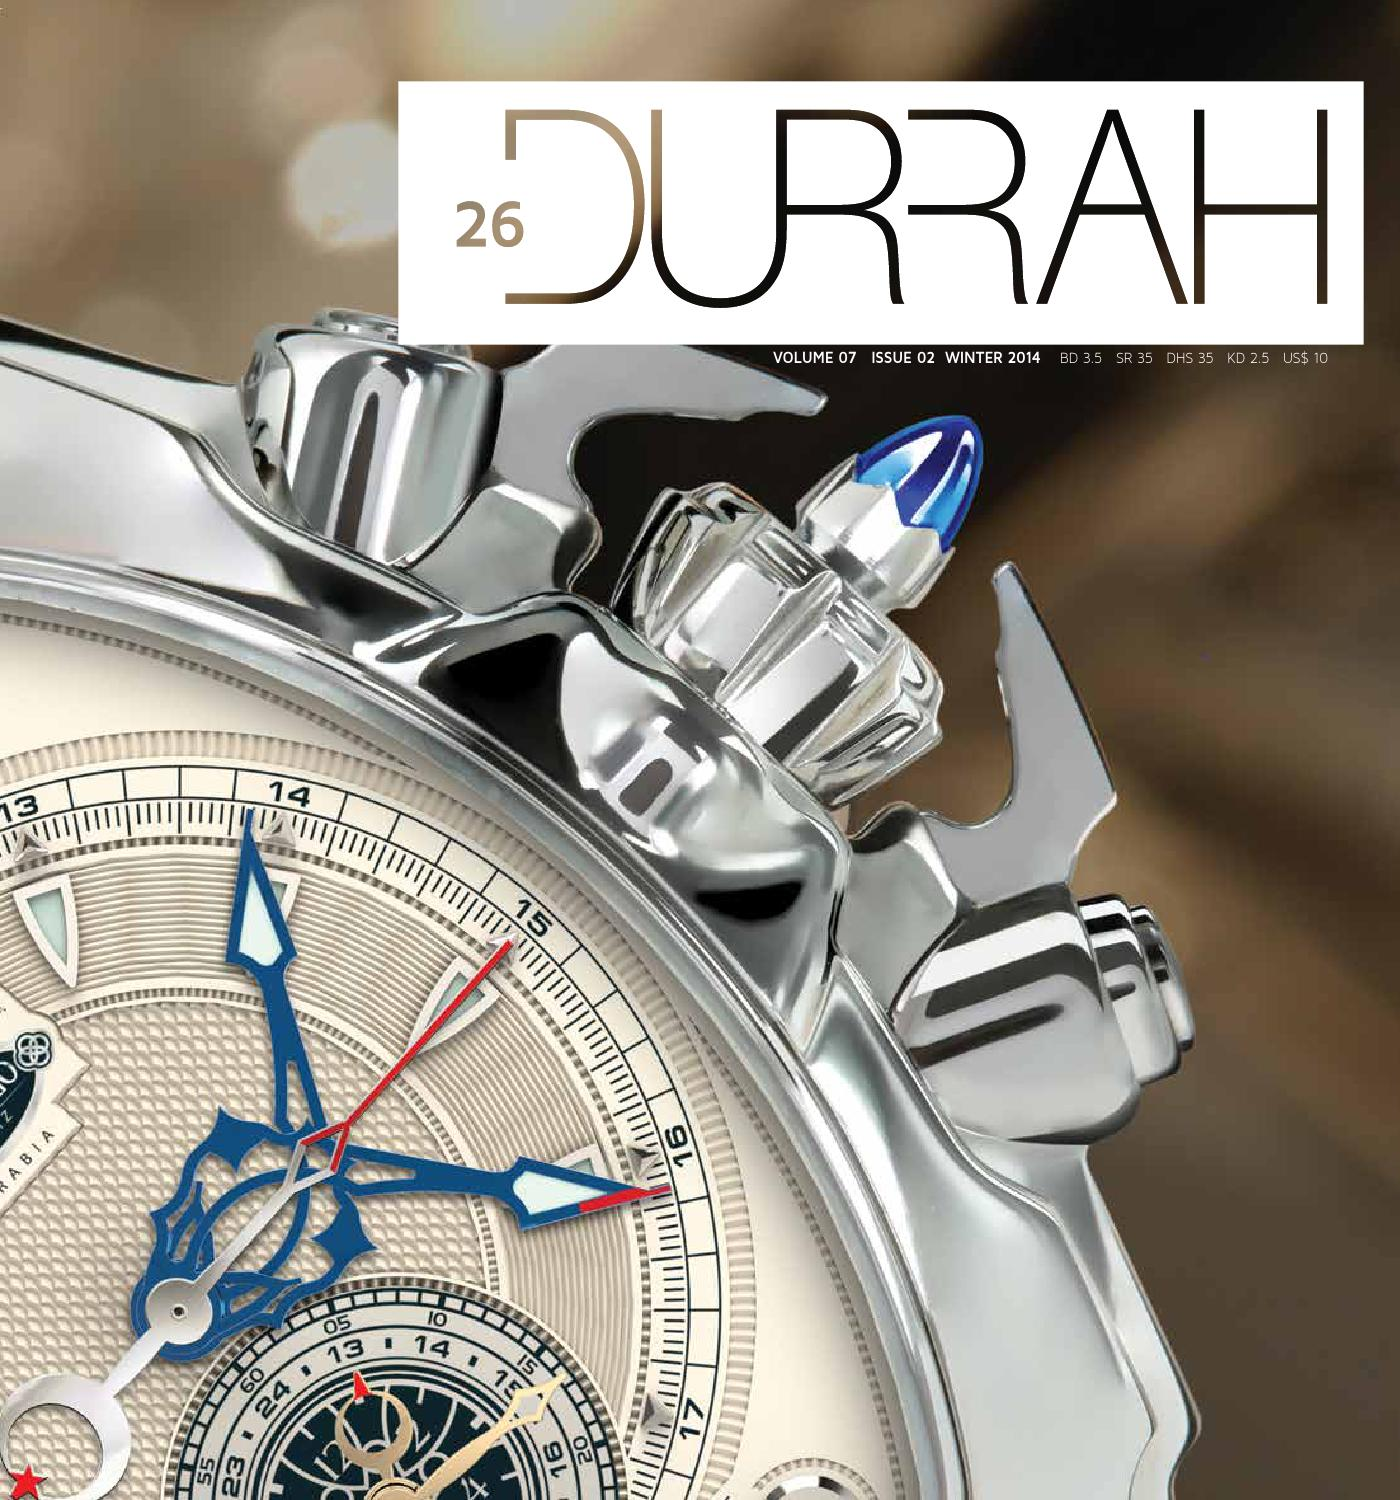 81cd9a7bf83 Durrah issue 26 by Durrah Luxury - issuu